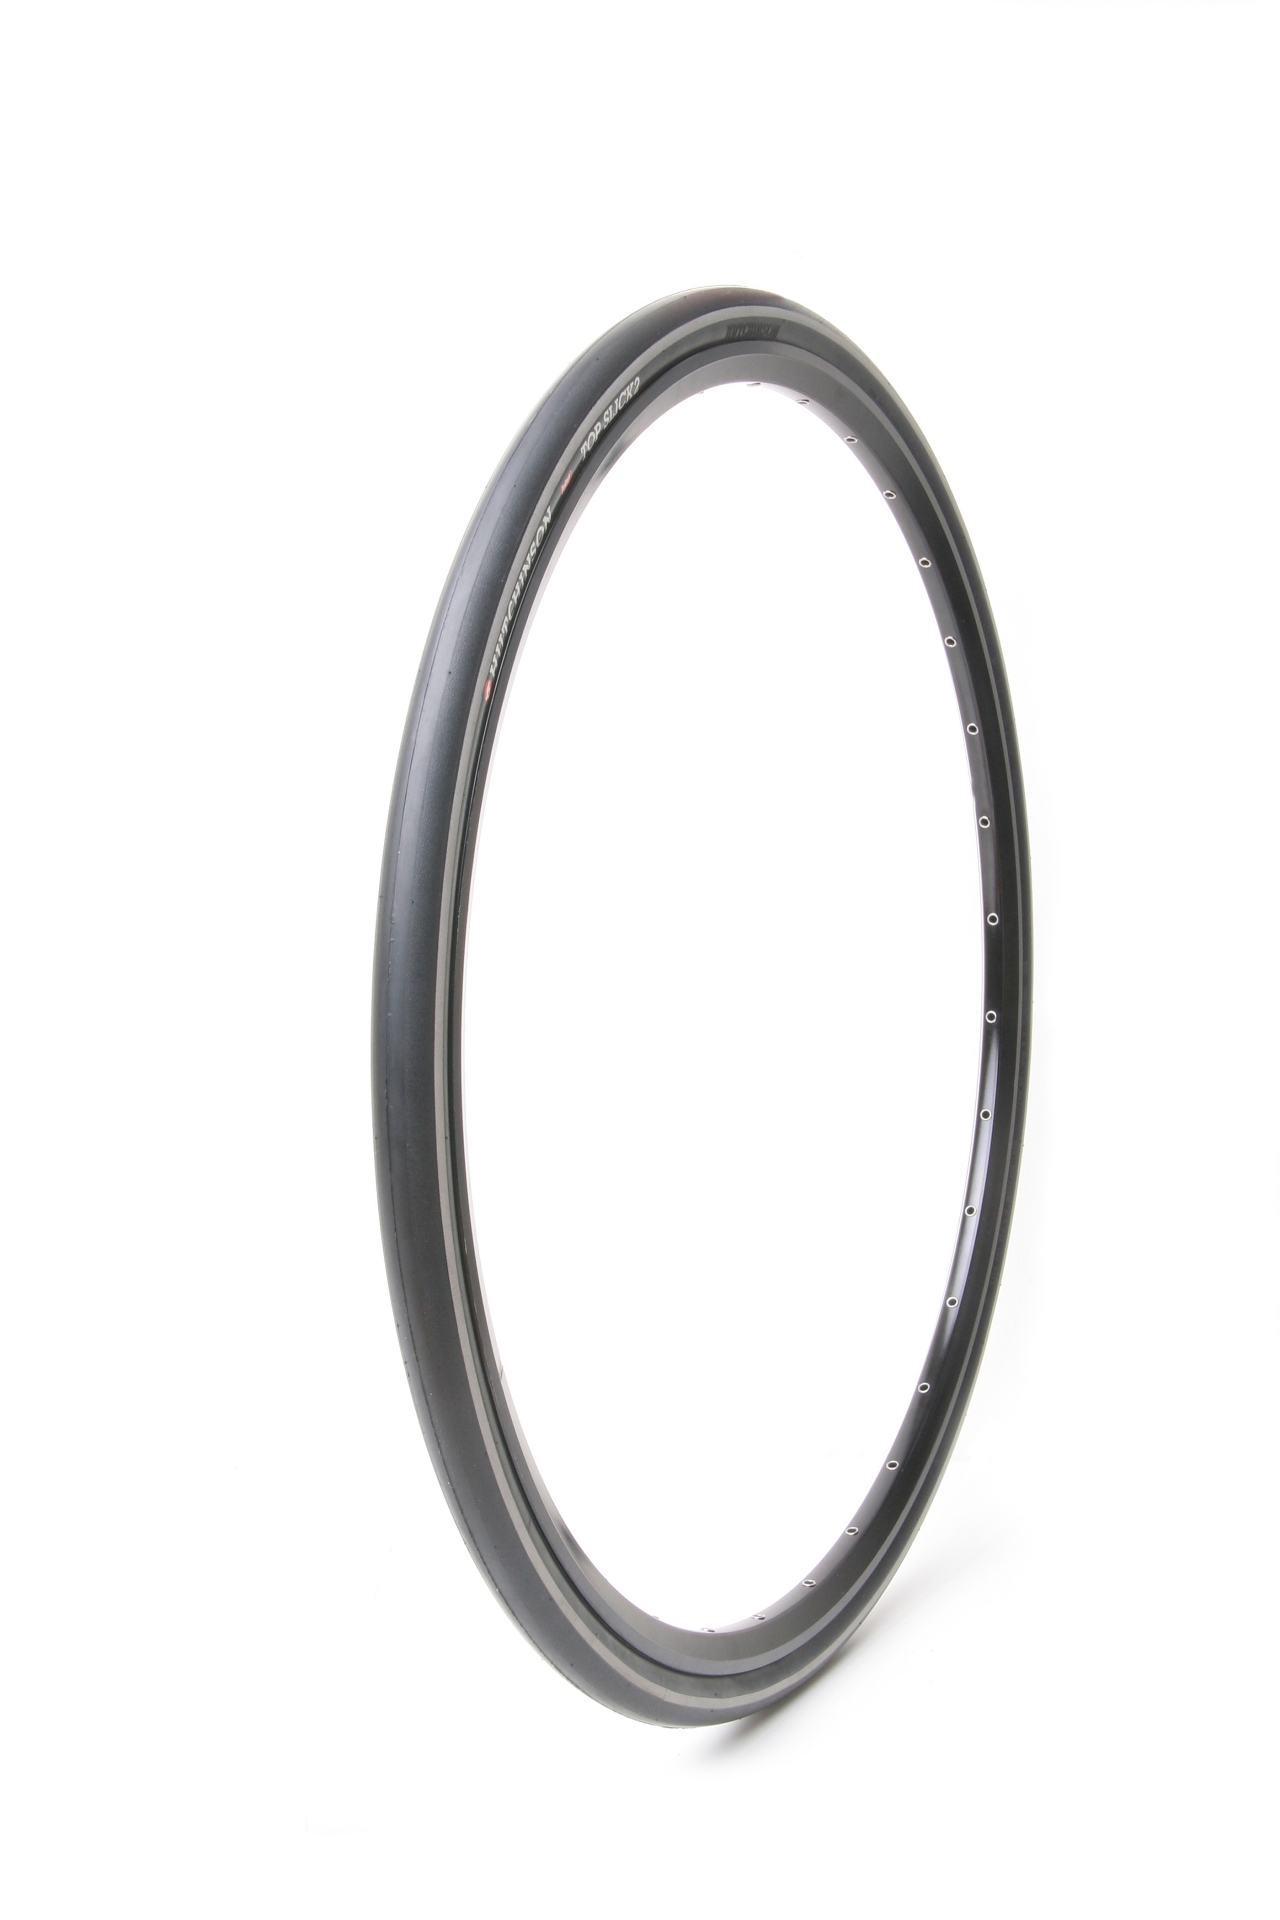 Pneu 26 x 1.00 Hutchinson Top Slick 2 (TT - TS)